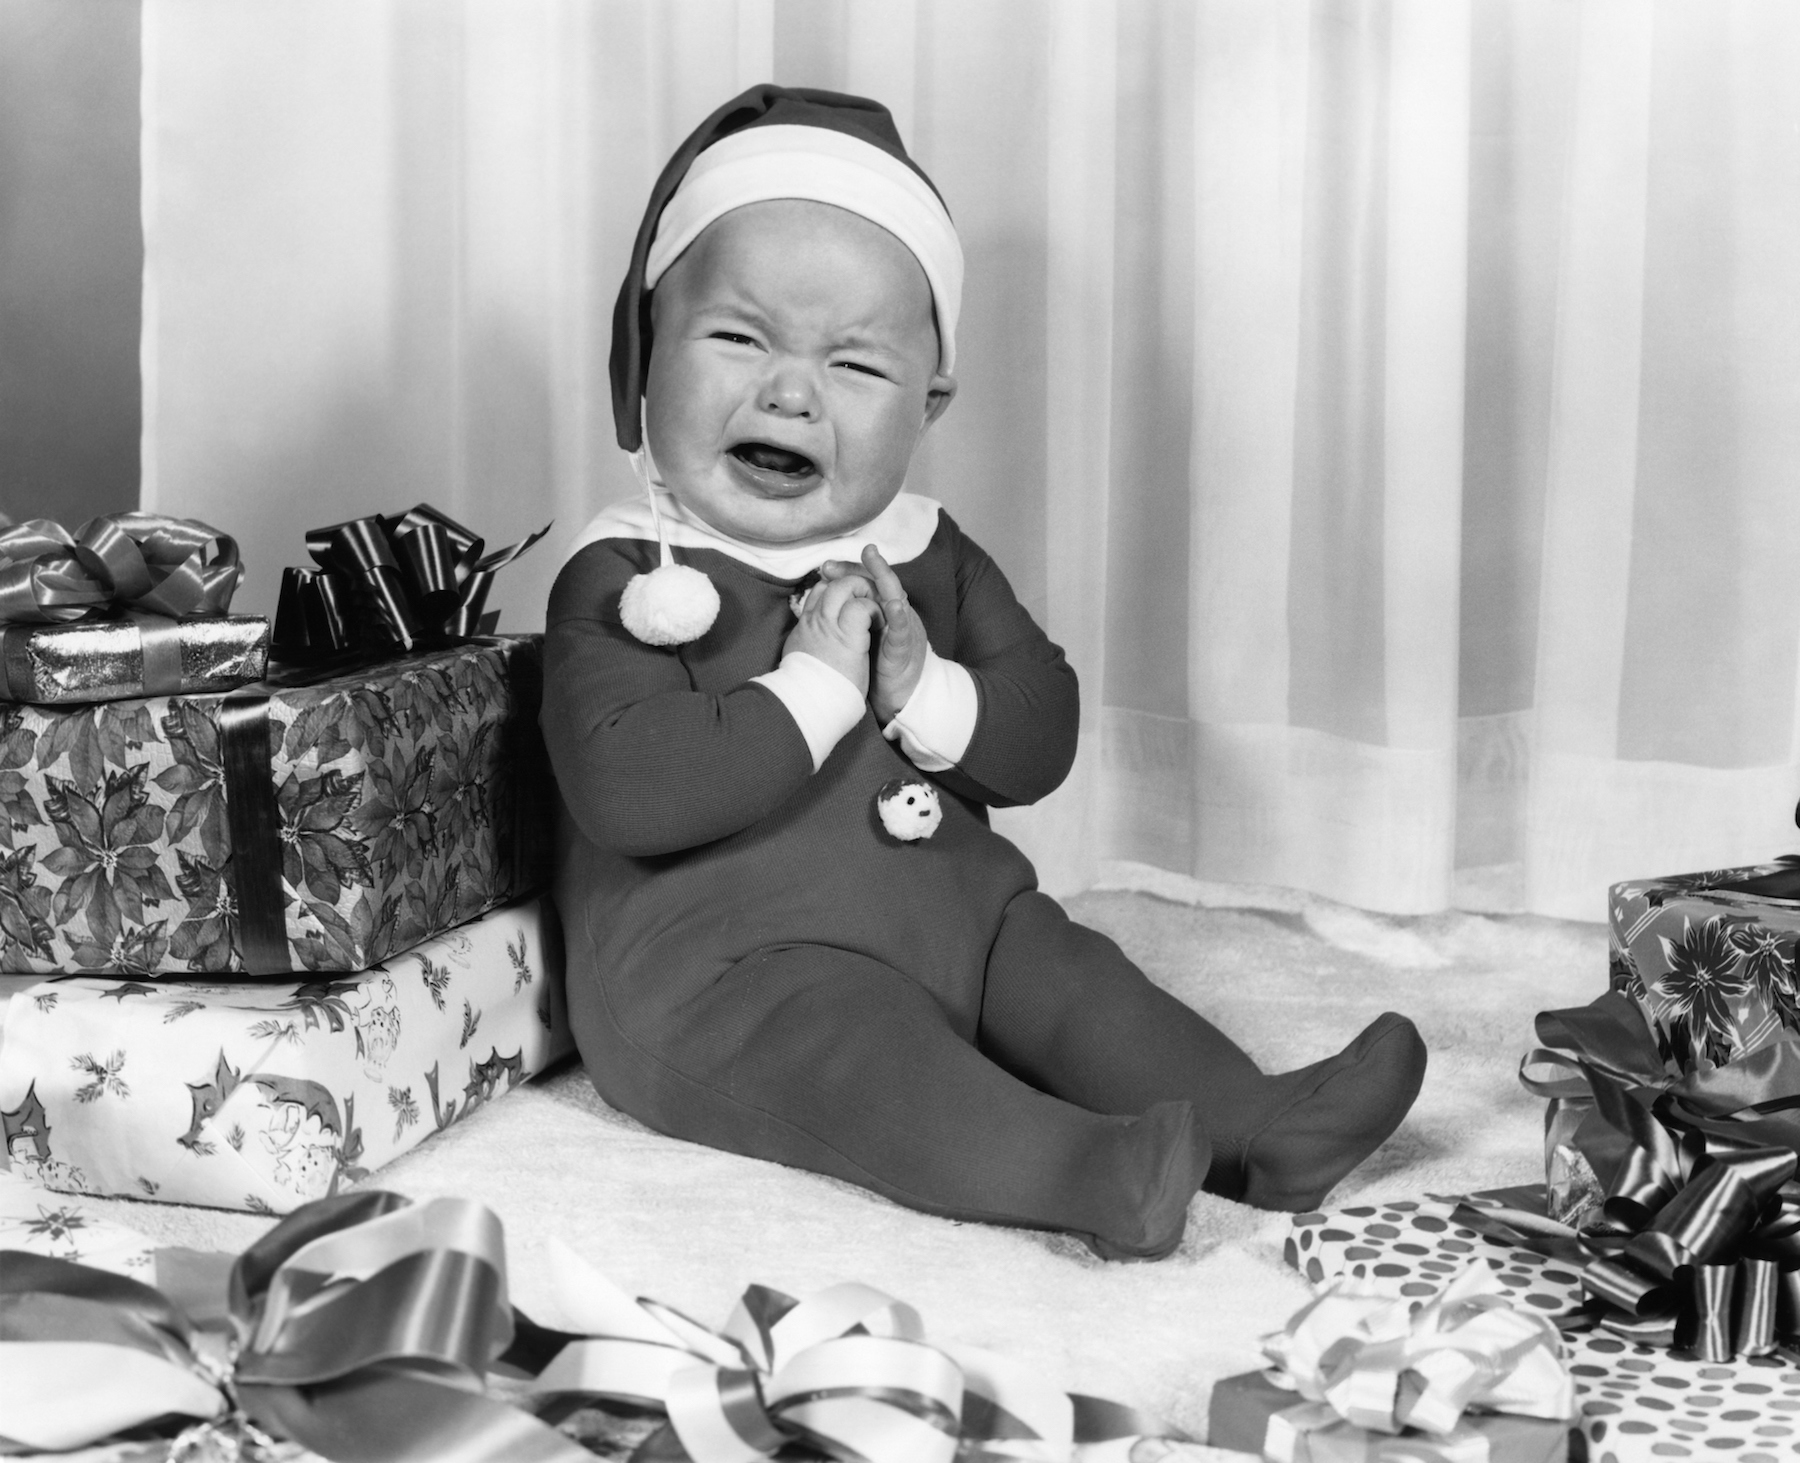 Crying baby sitting on Christmas gifts